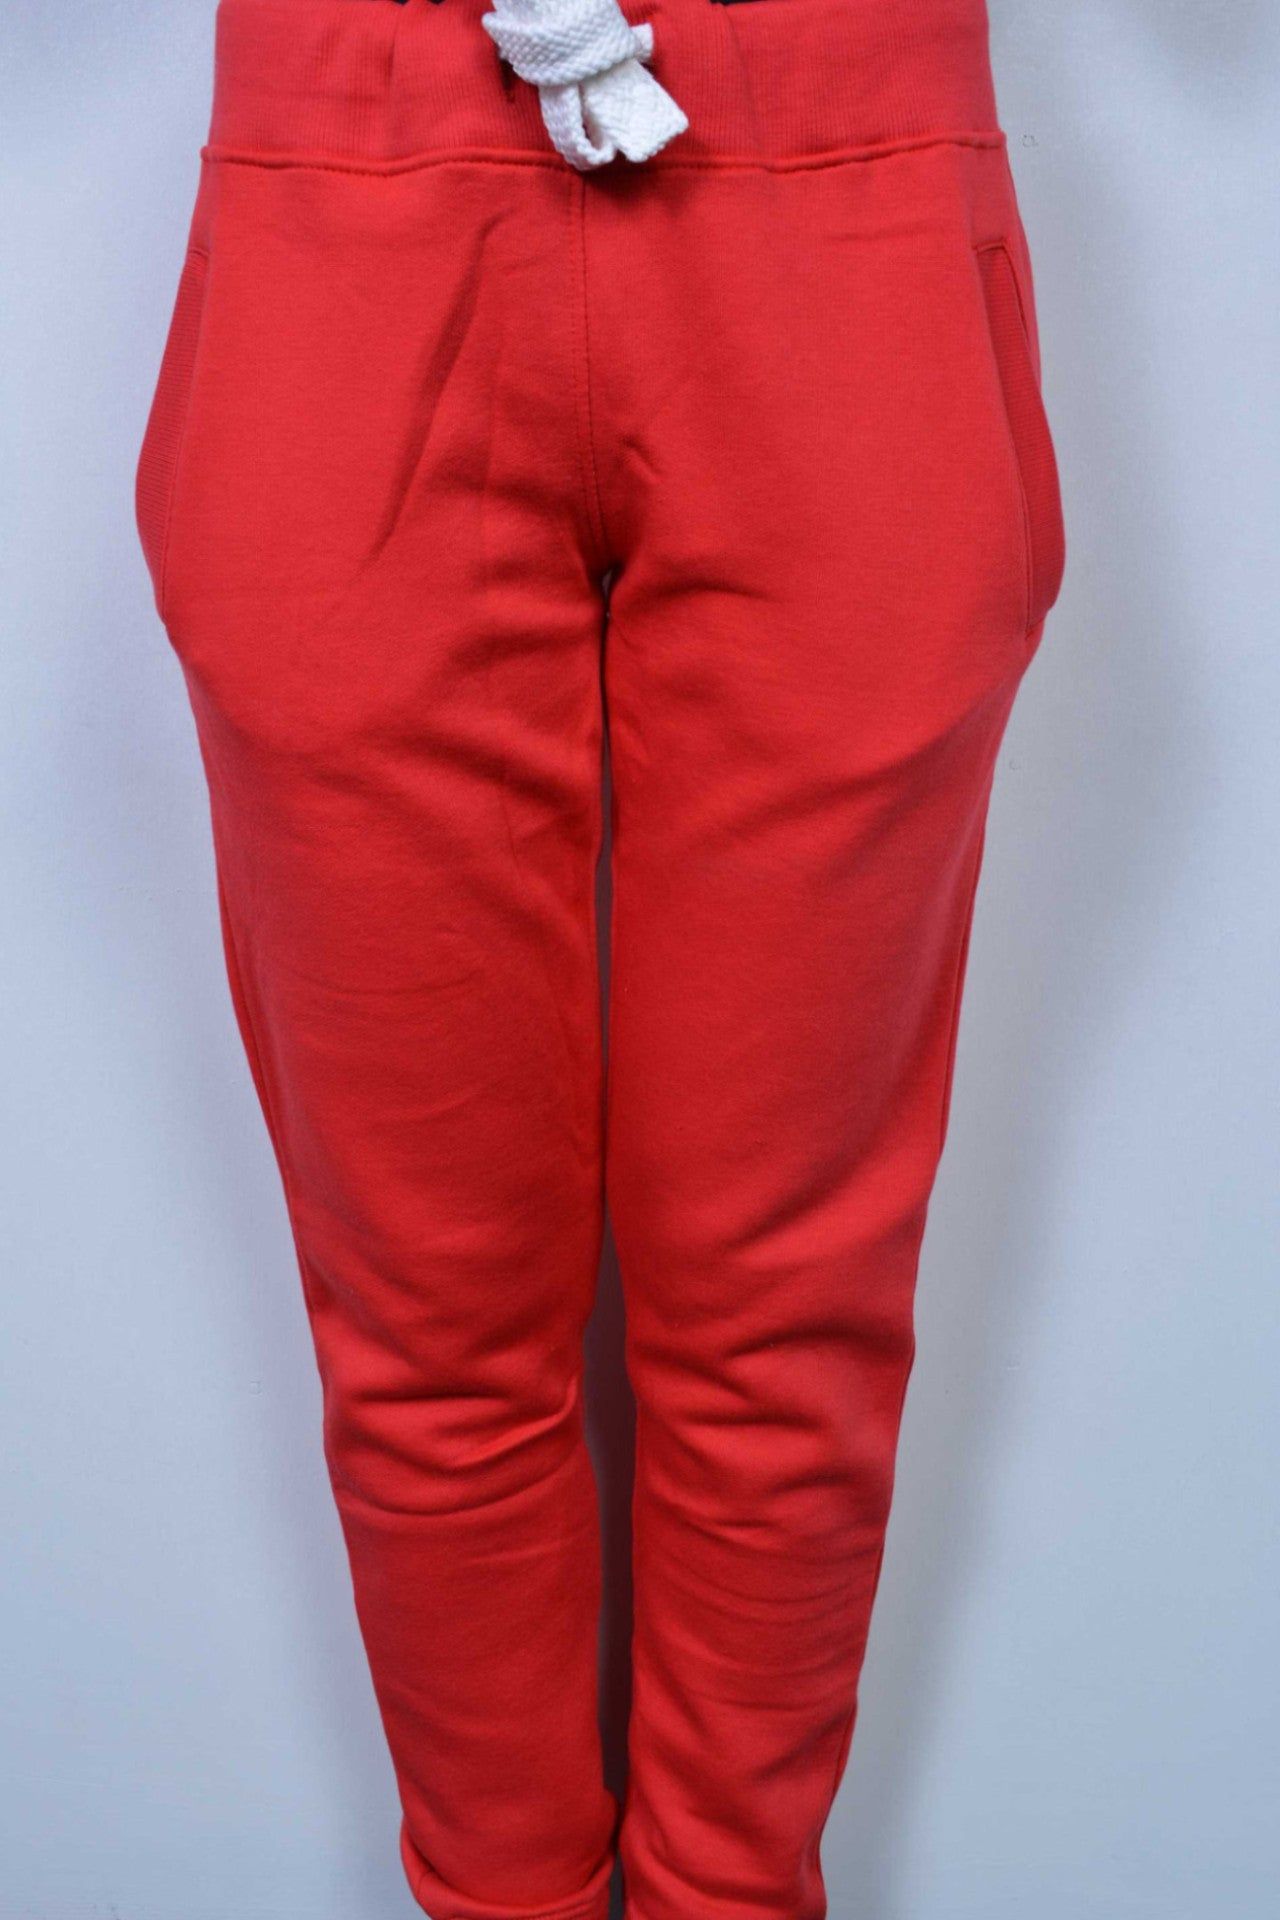 Plain Sweatpants Red - Miss Tempted  - 2